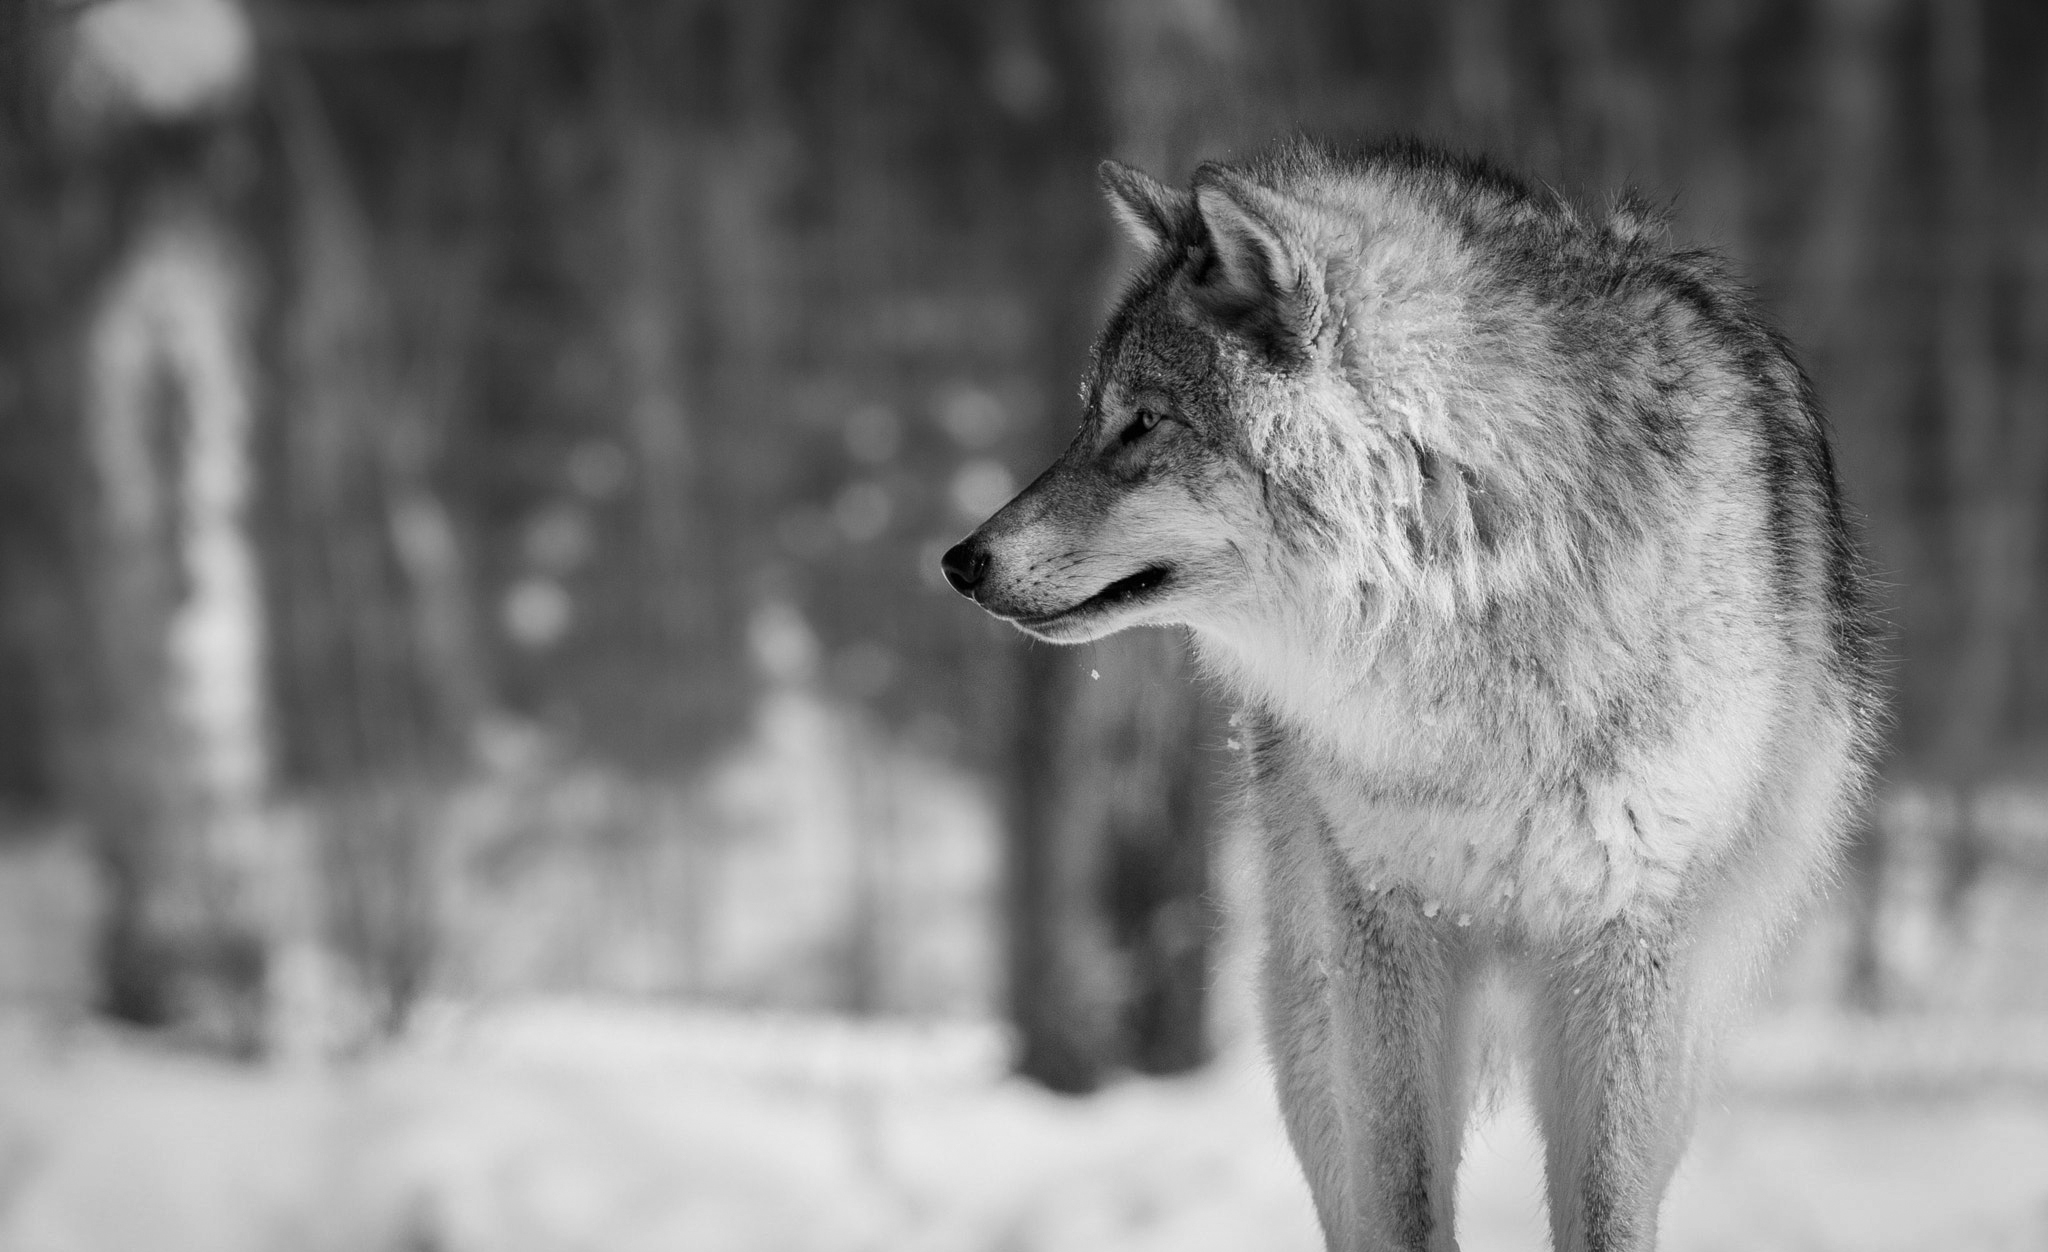 Downloaded From Allhdwallpapers Wolf Wallpaper Hd Black And White 2048x1252 Download Hd Wallpaper Wallpapertip